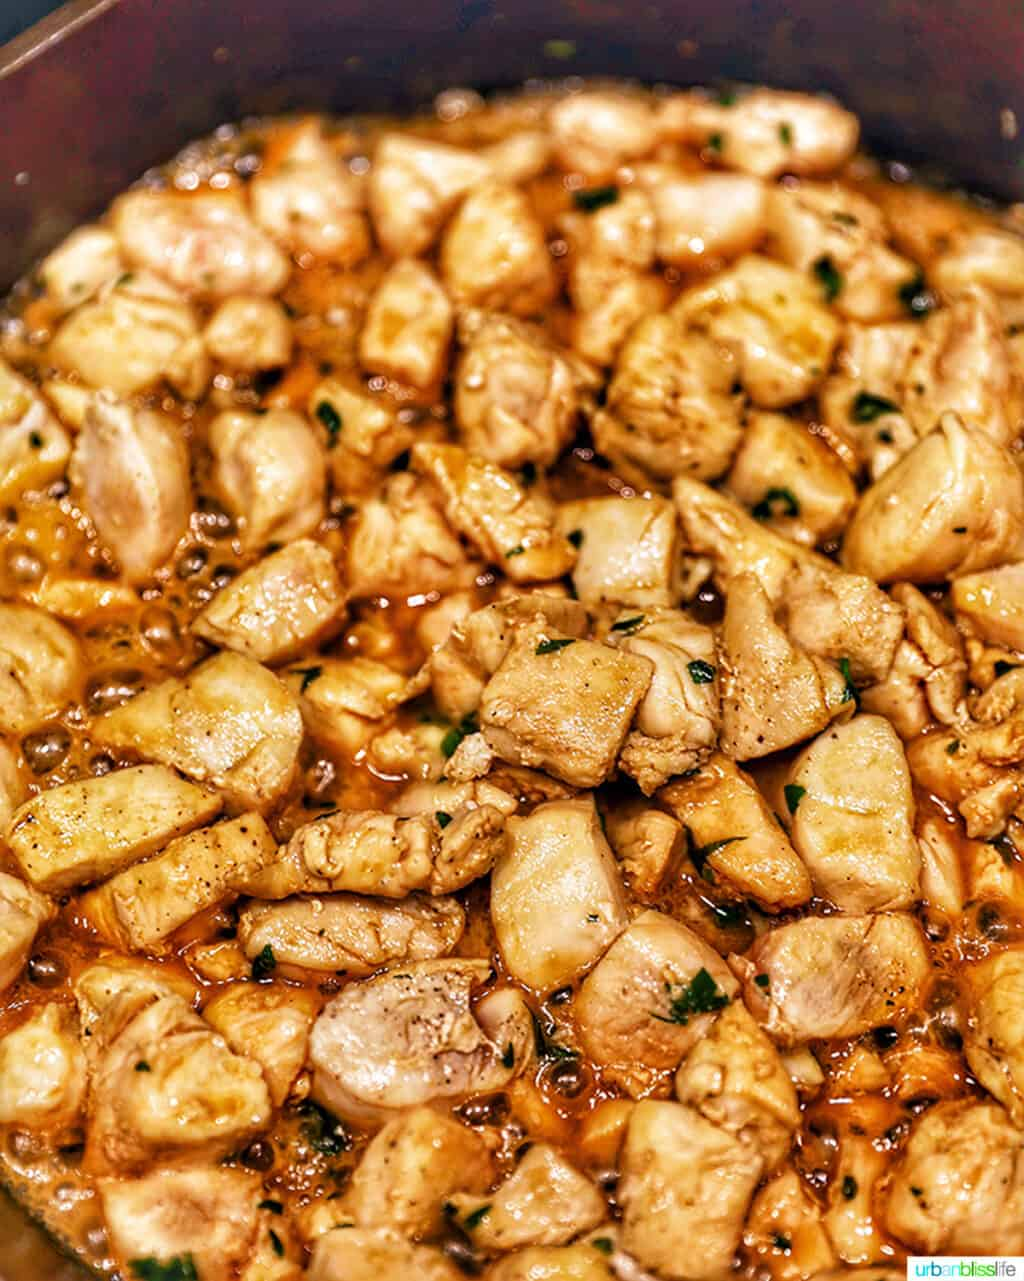 soy garlic butter chicken bites cooking in a cast iron pan